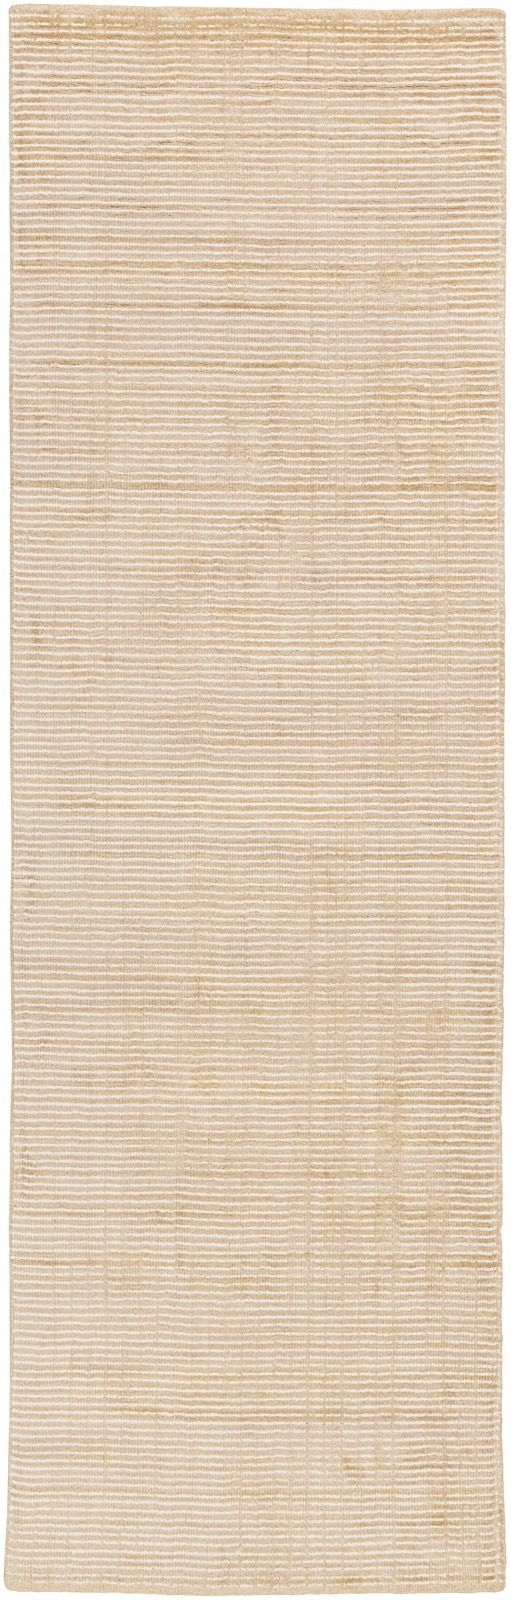 surya templeton contemporary area rug collection